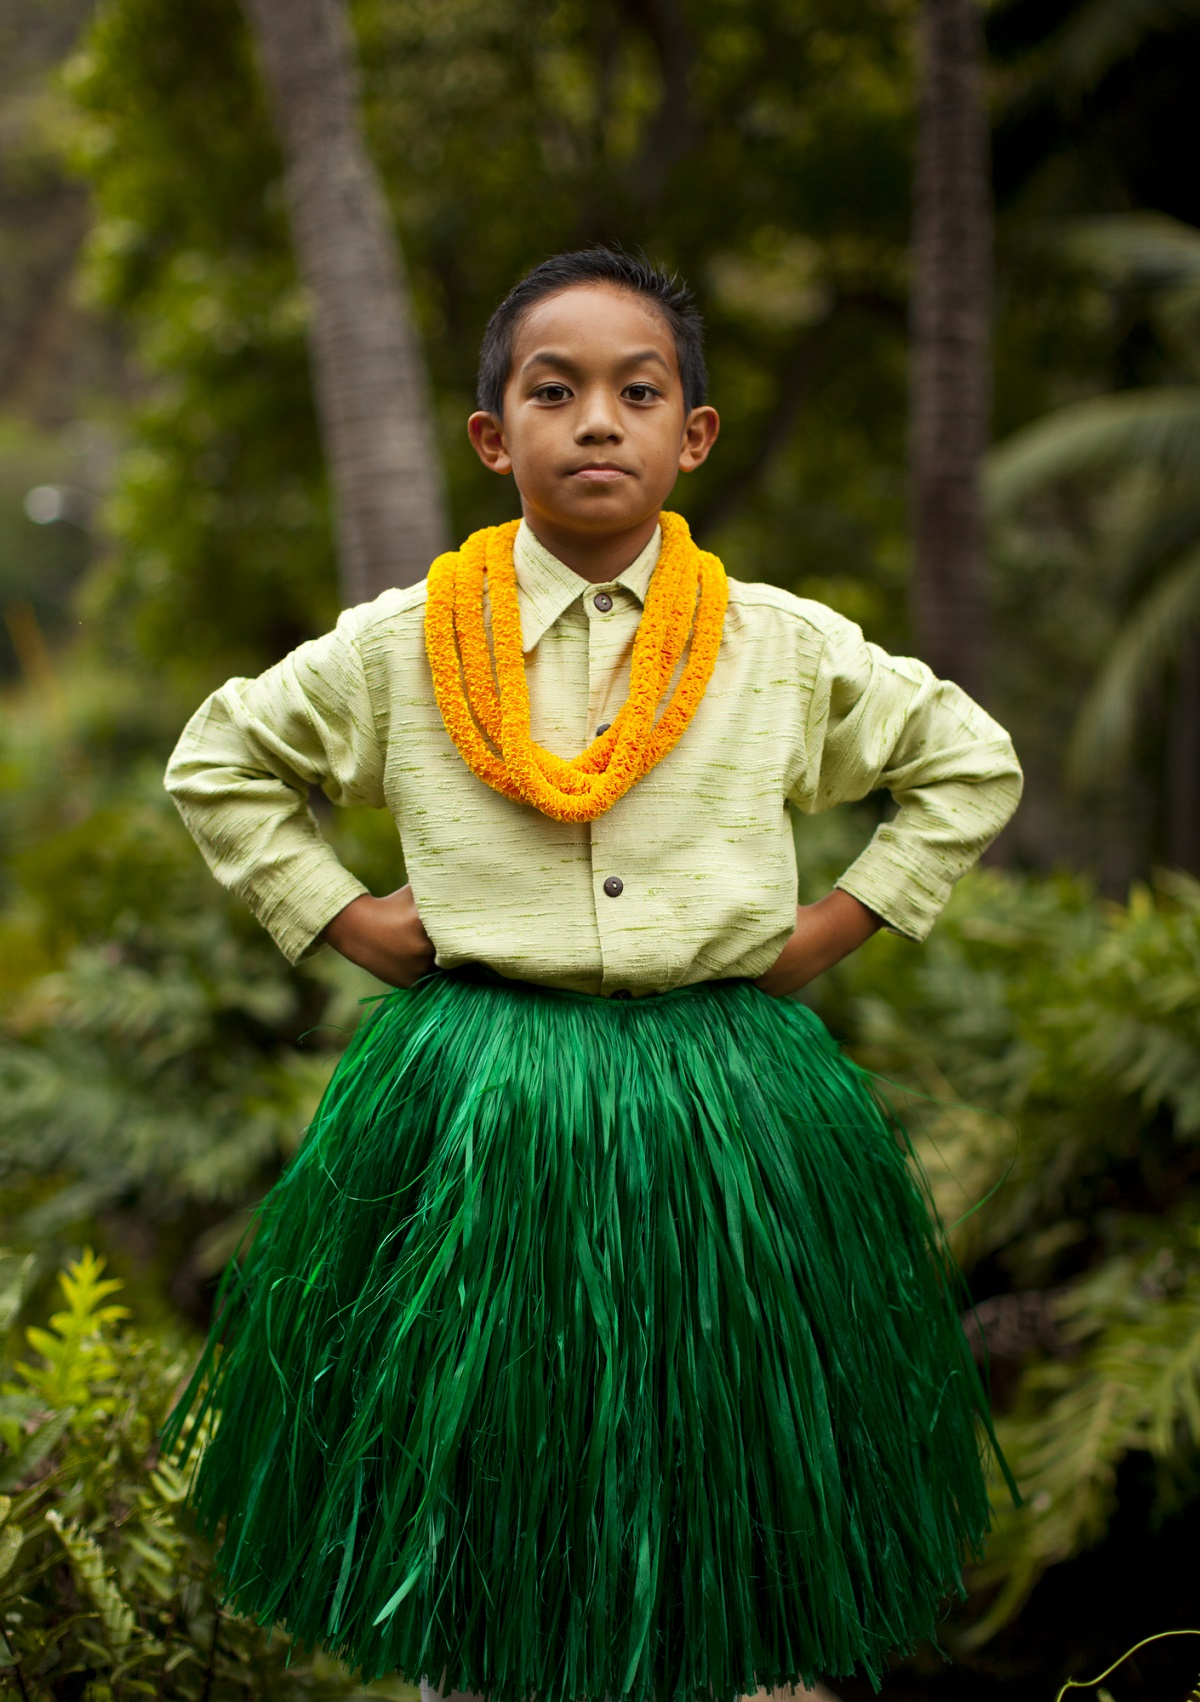 Boy in hula attire and lei